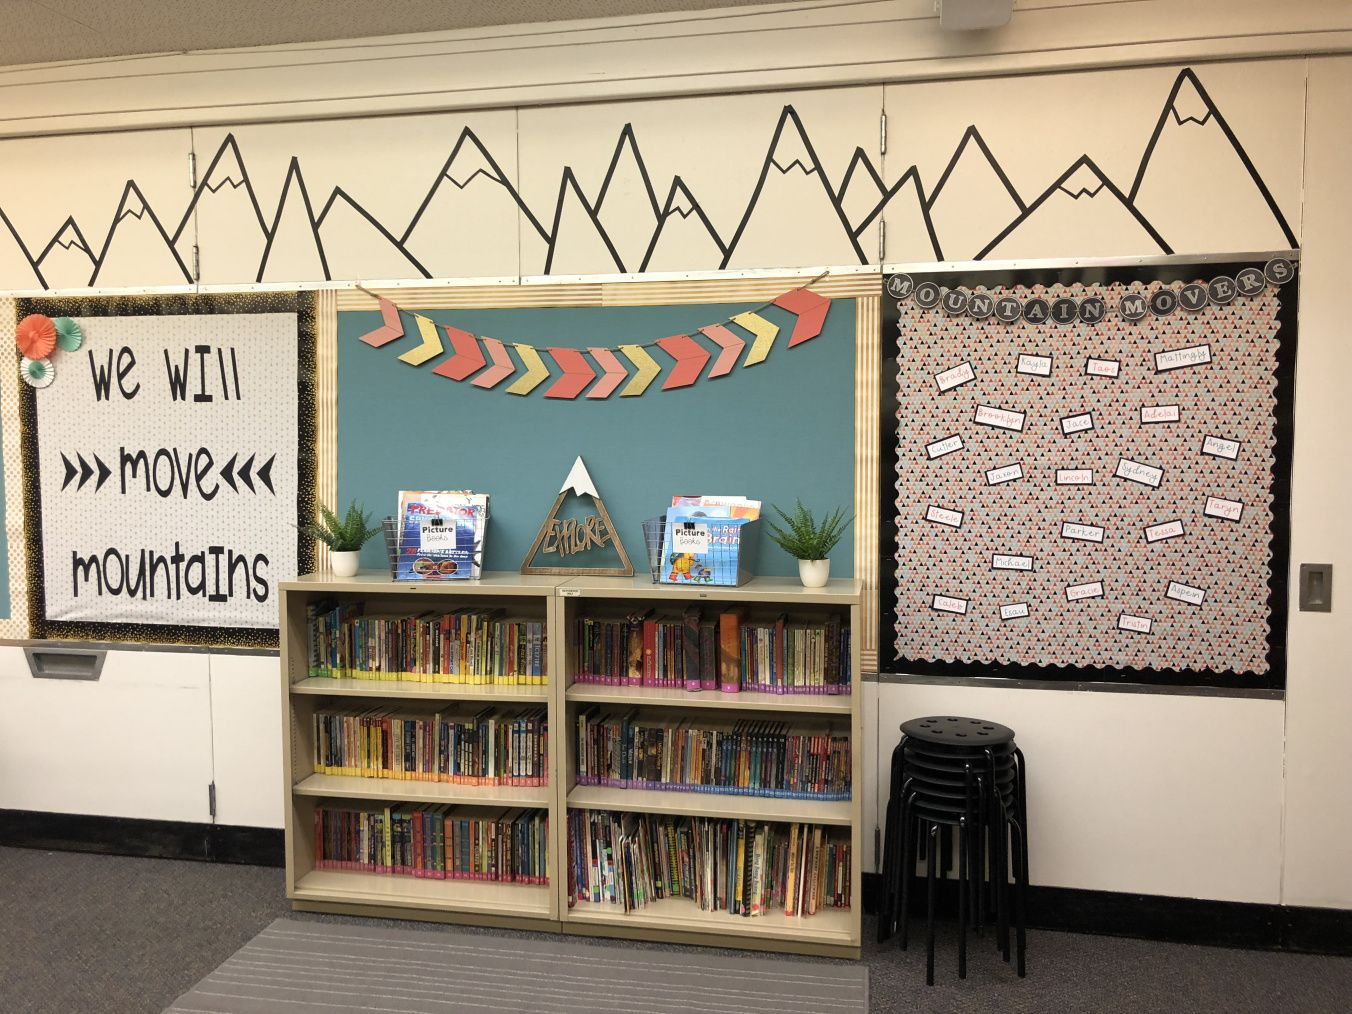 Setting Up My Classroom(s) | Moving Mountains in 5th #classroomdecor